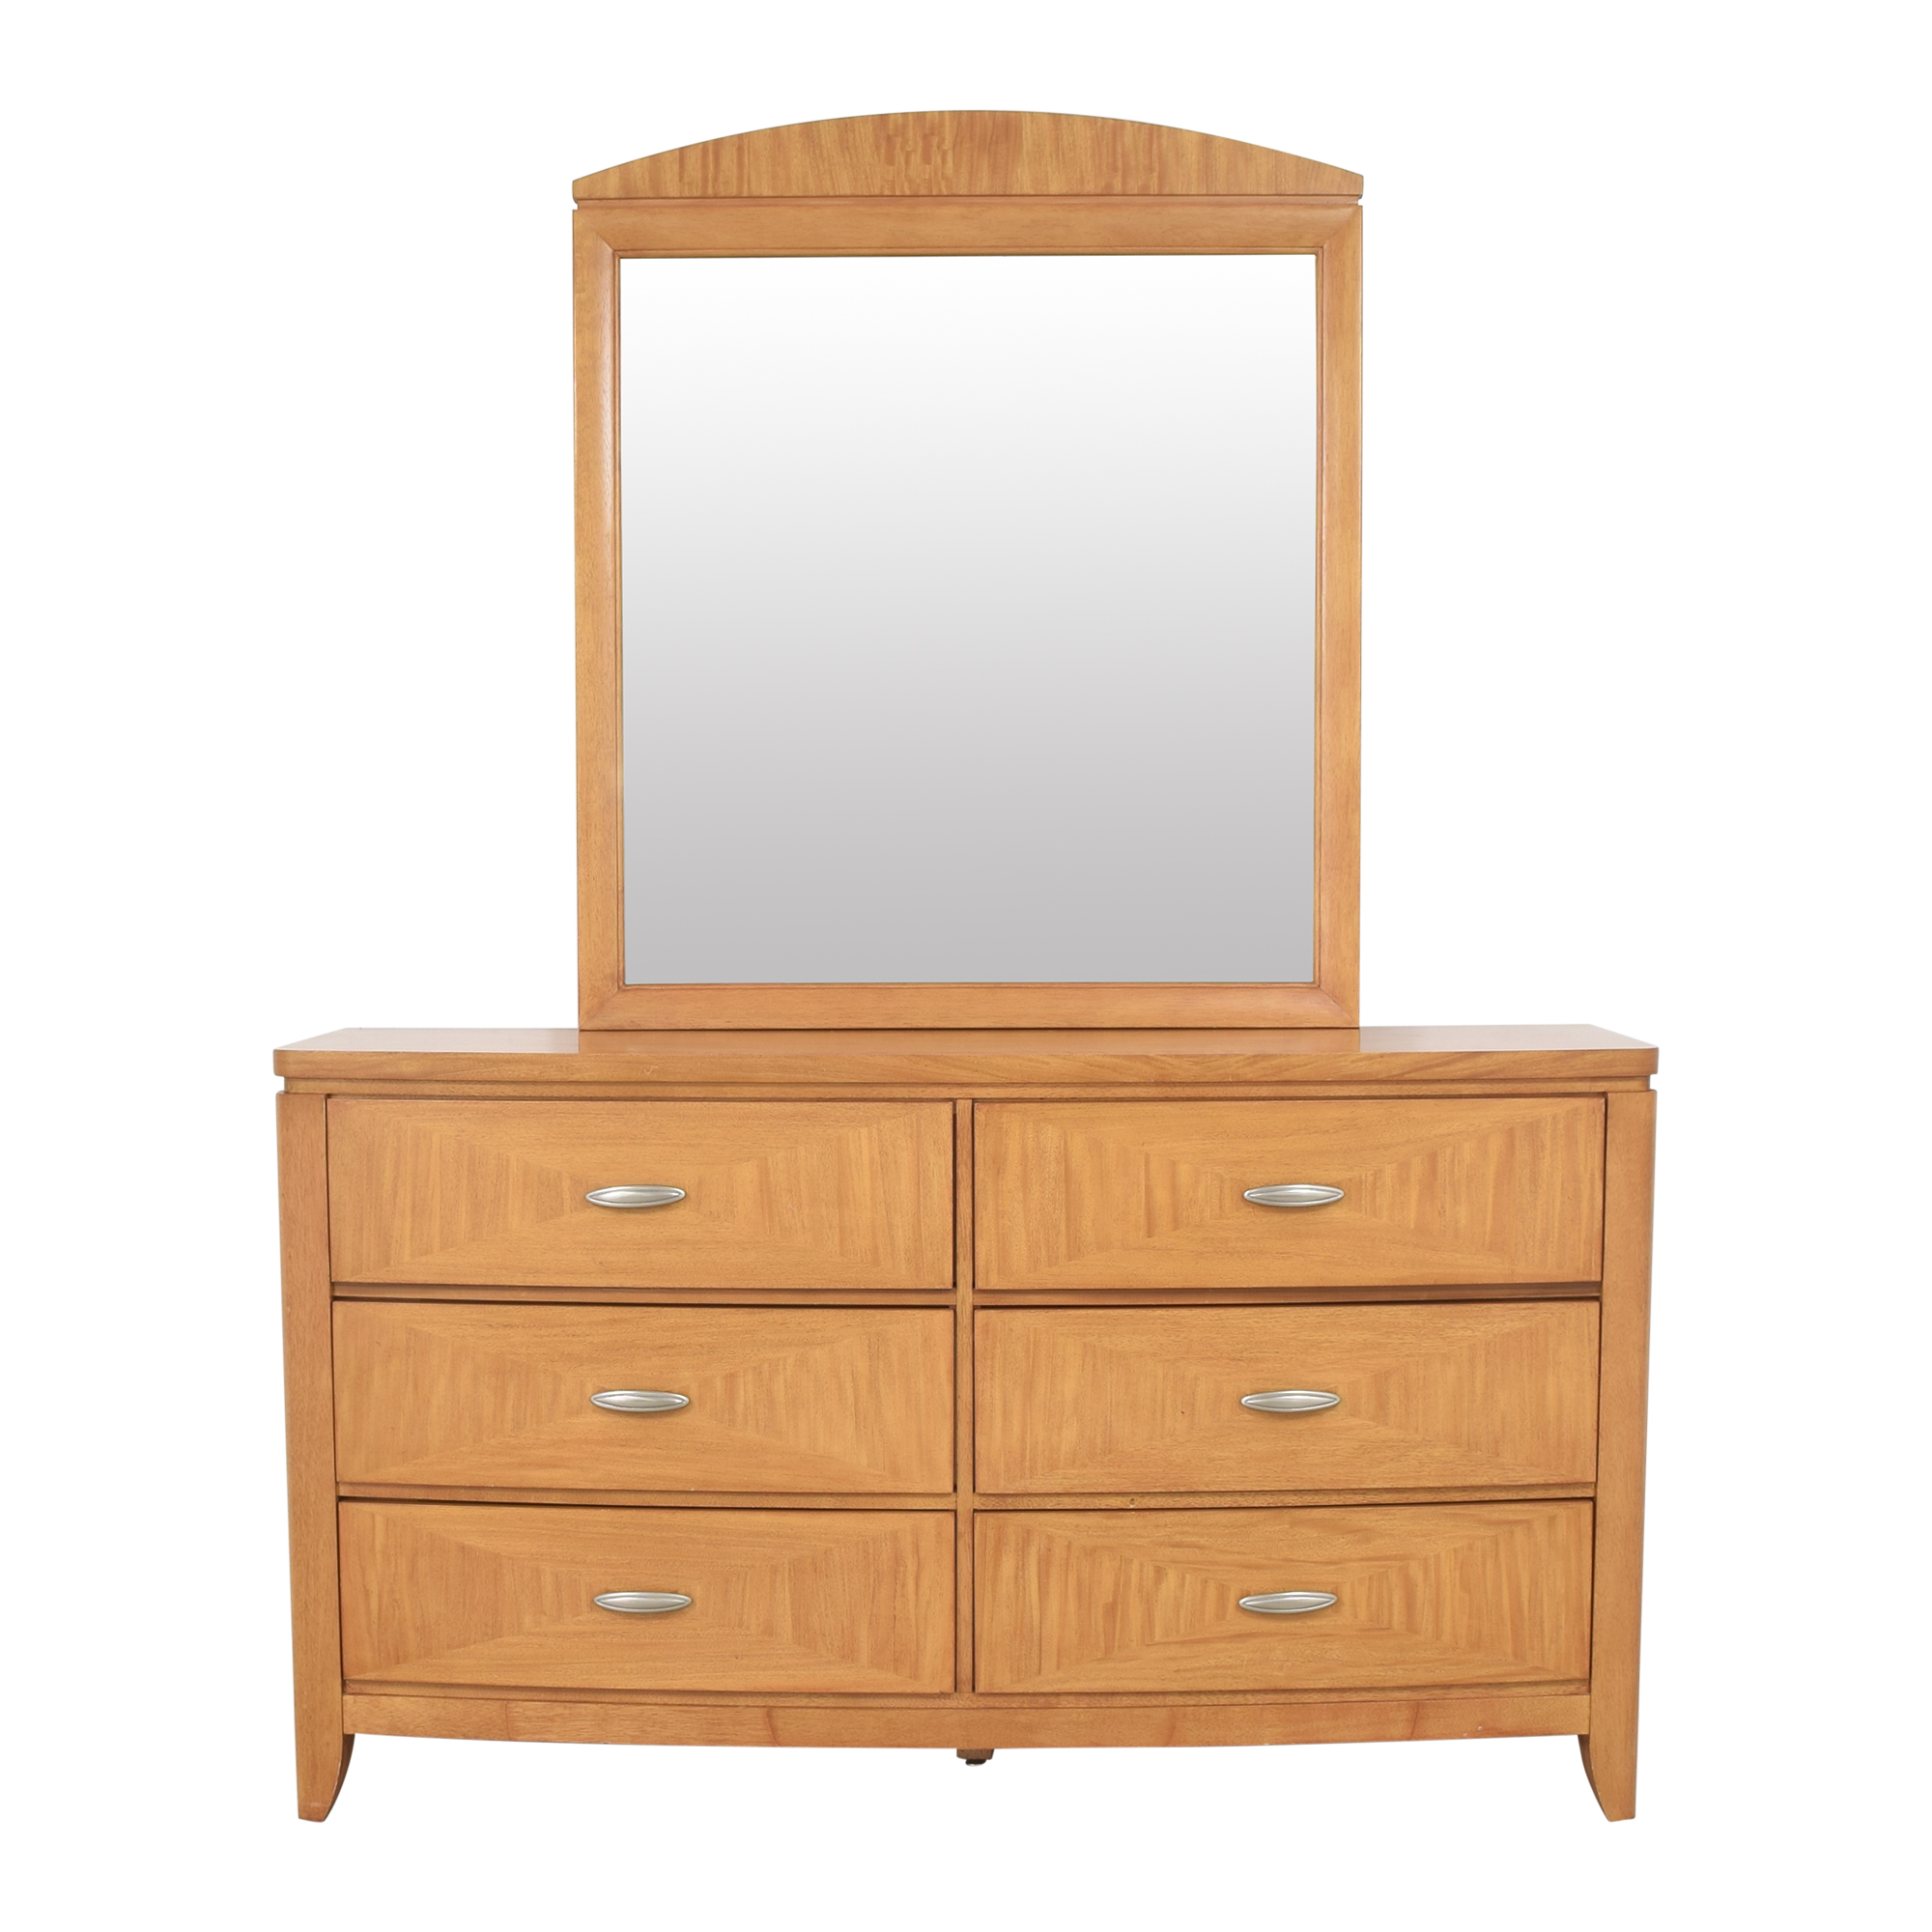 Universal Furniture Universal Furniture Double Dresser with Mirror on sale